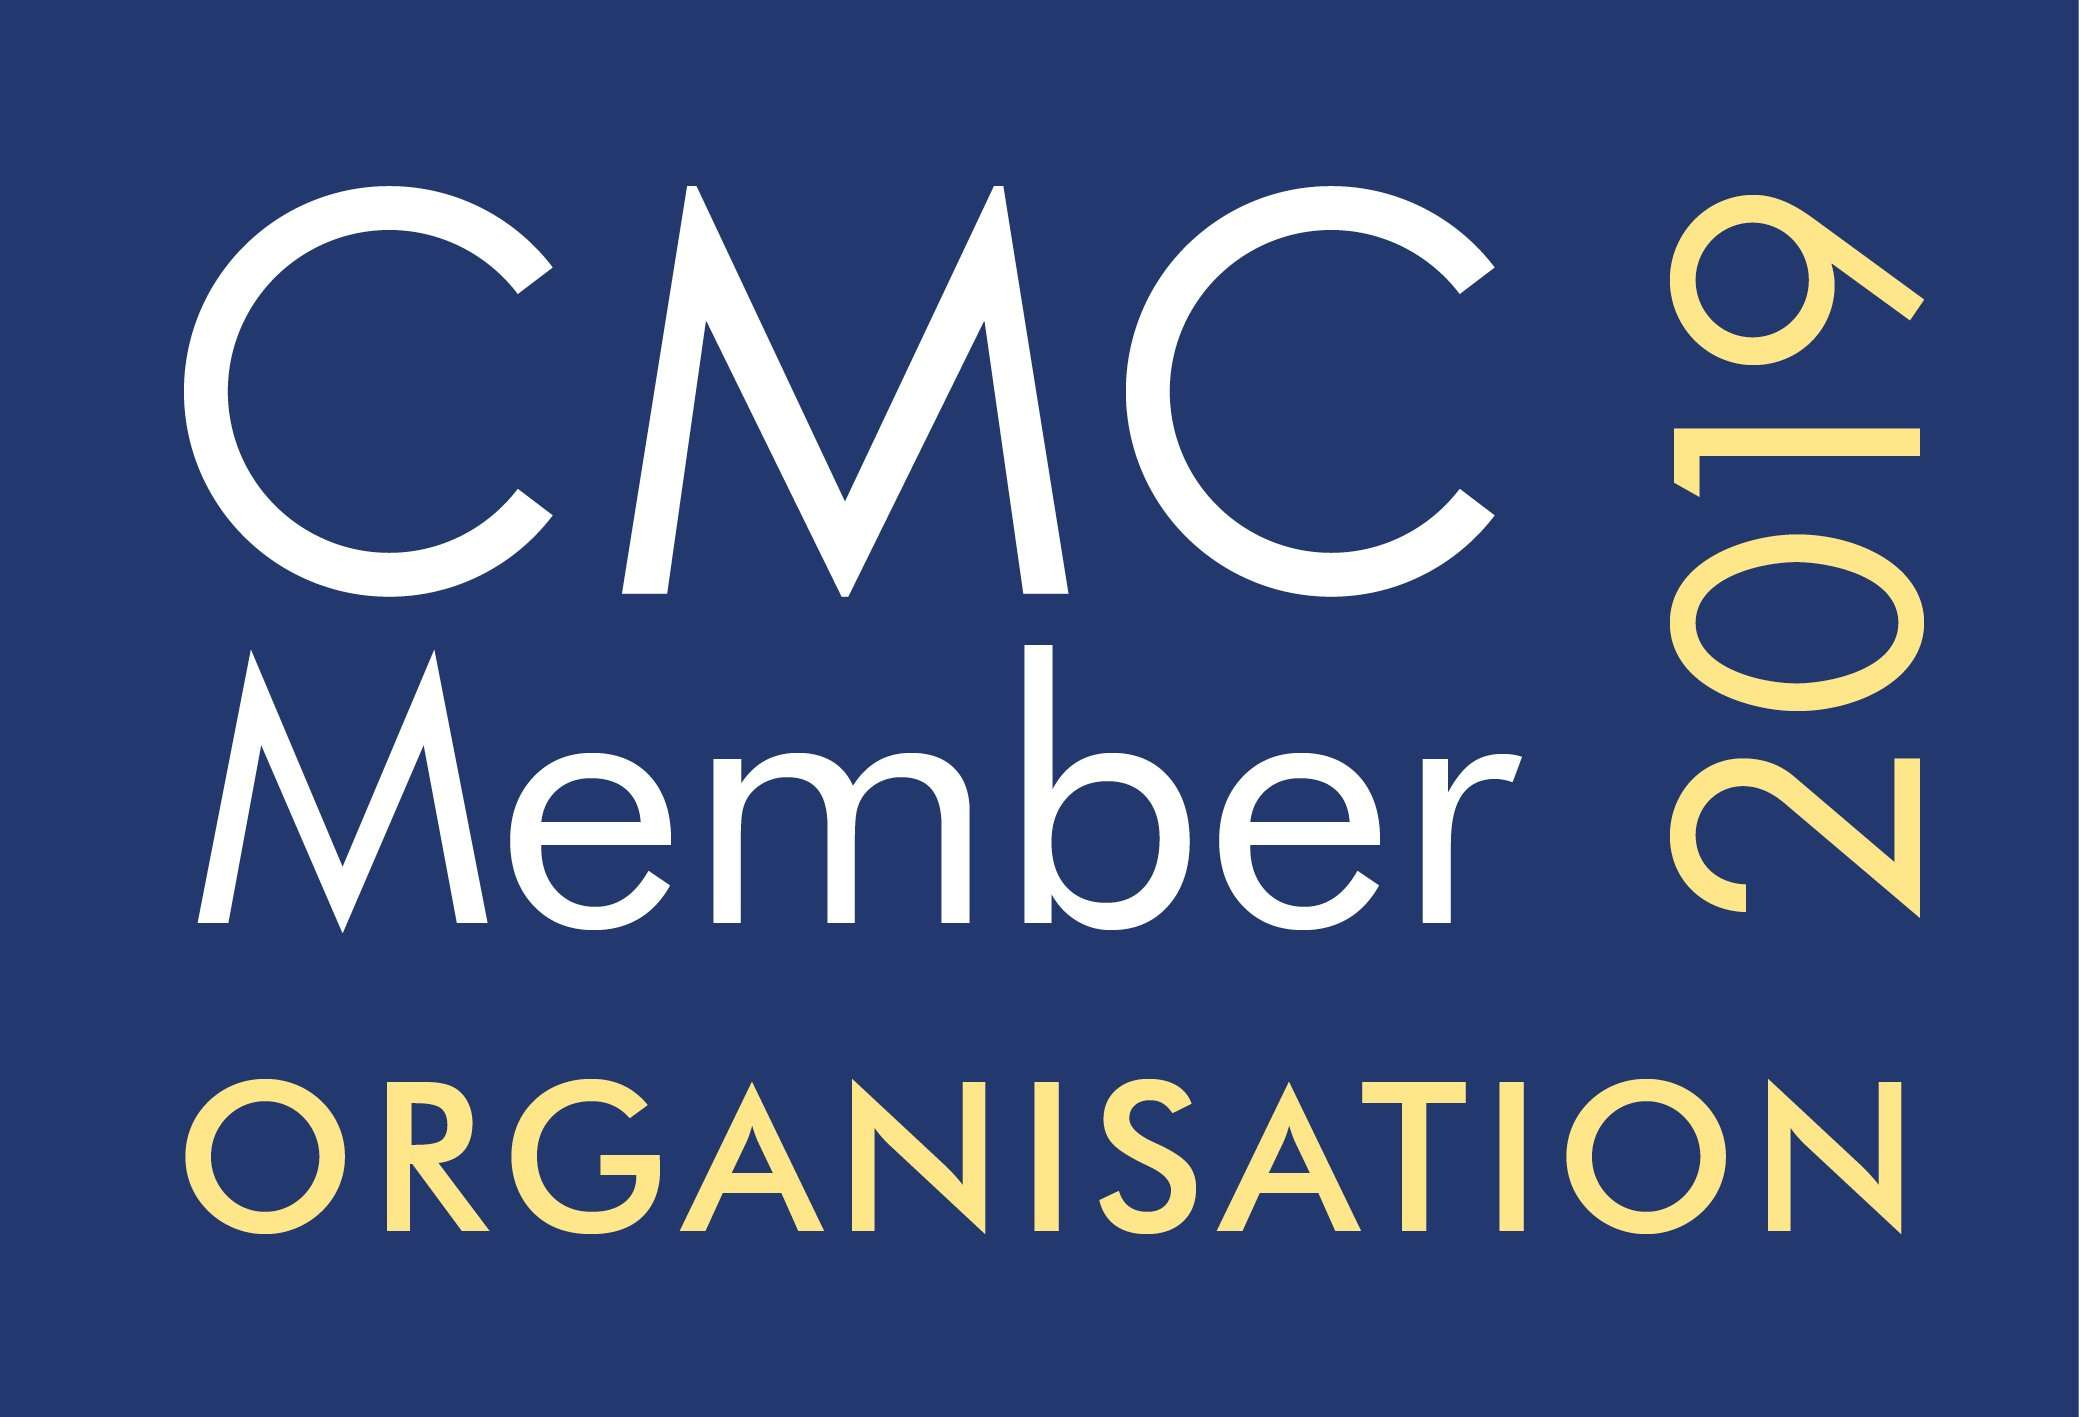 Member Civil Mediation Council